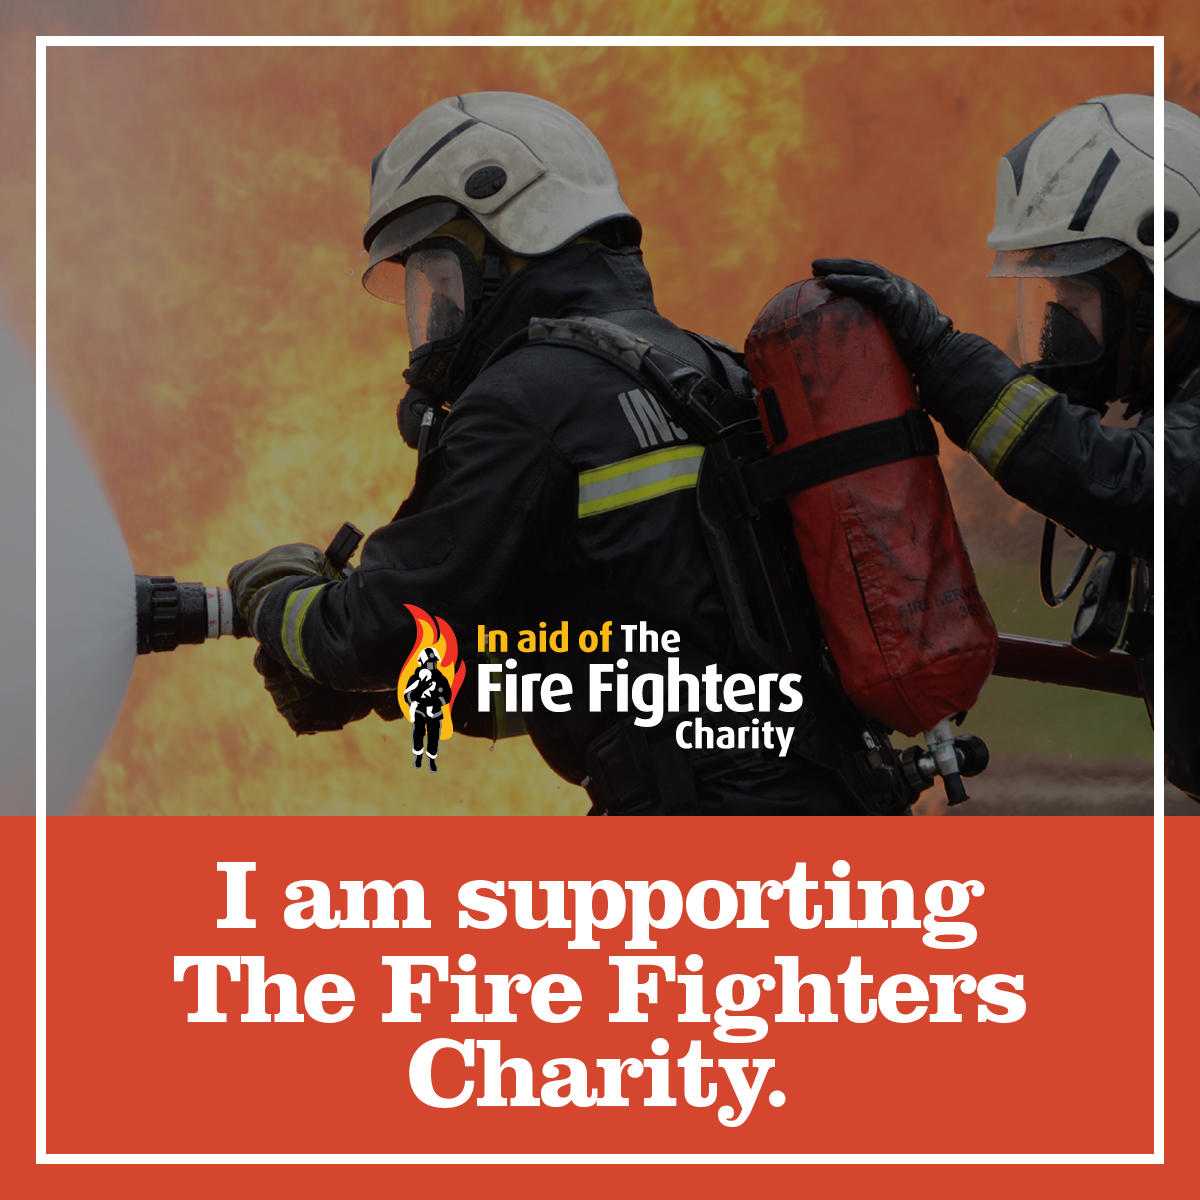 I am supporting The Fire Fighters Charity